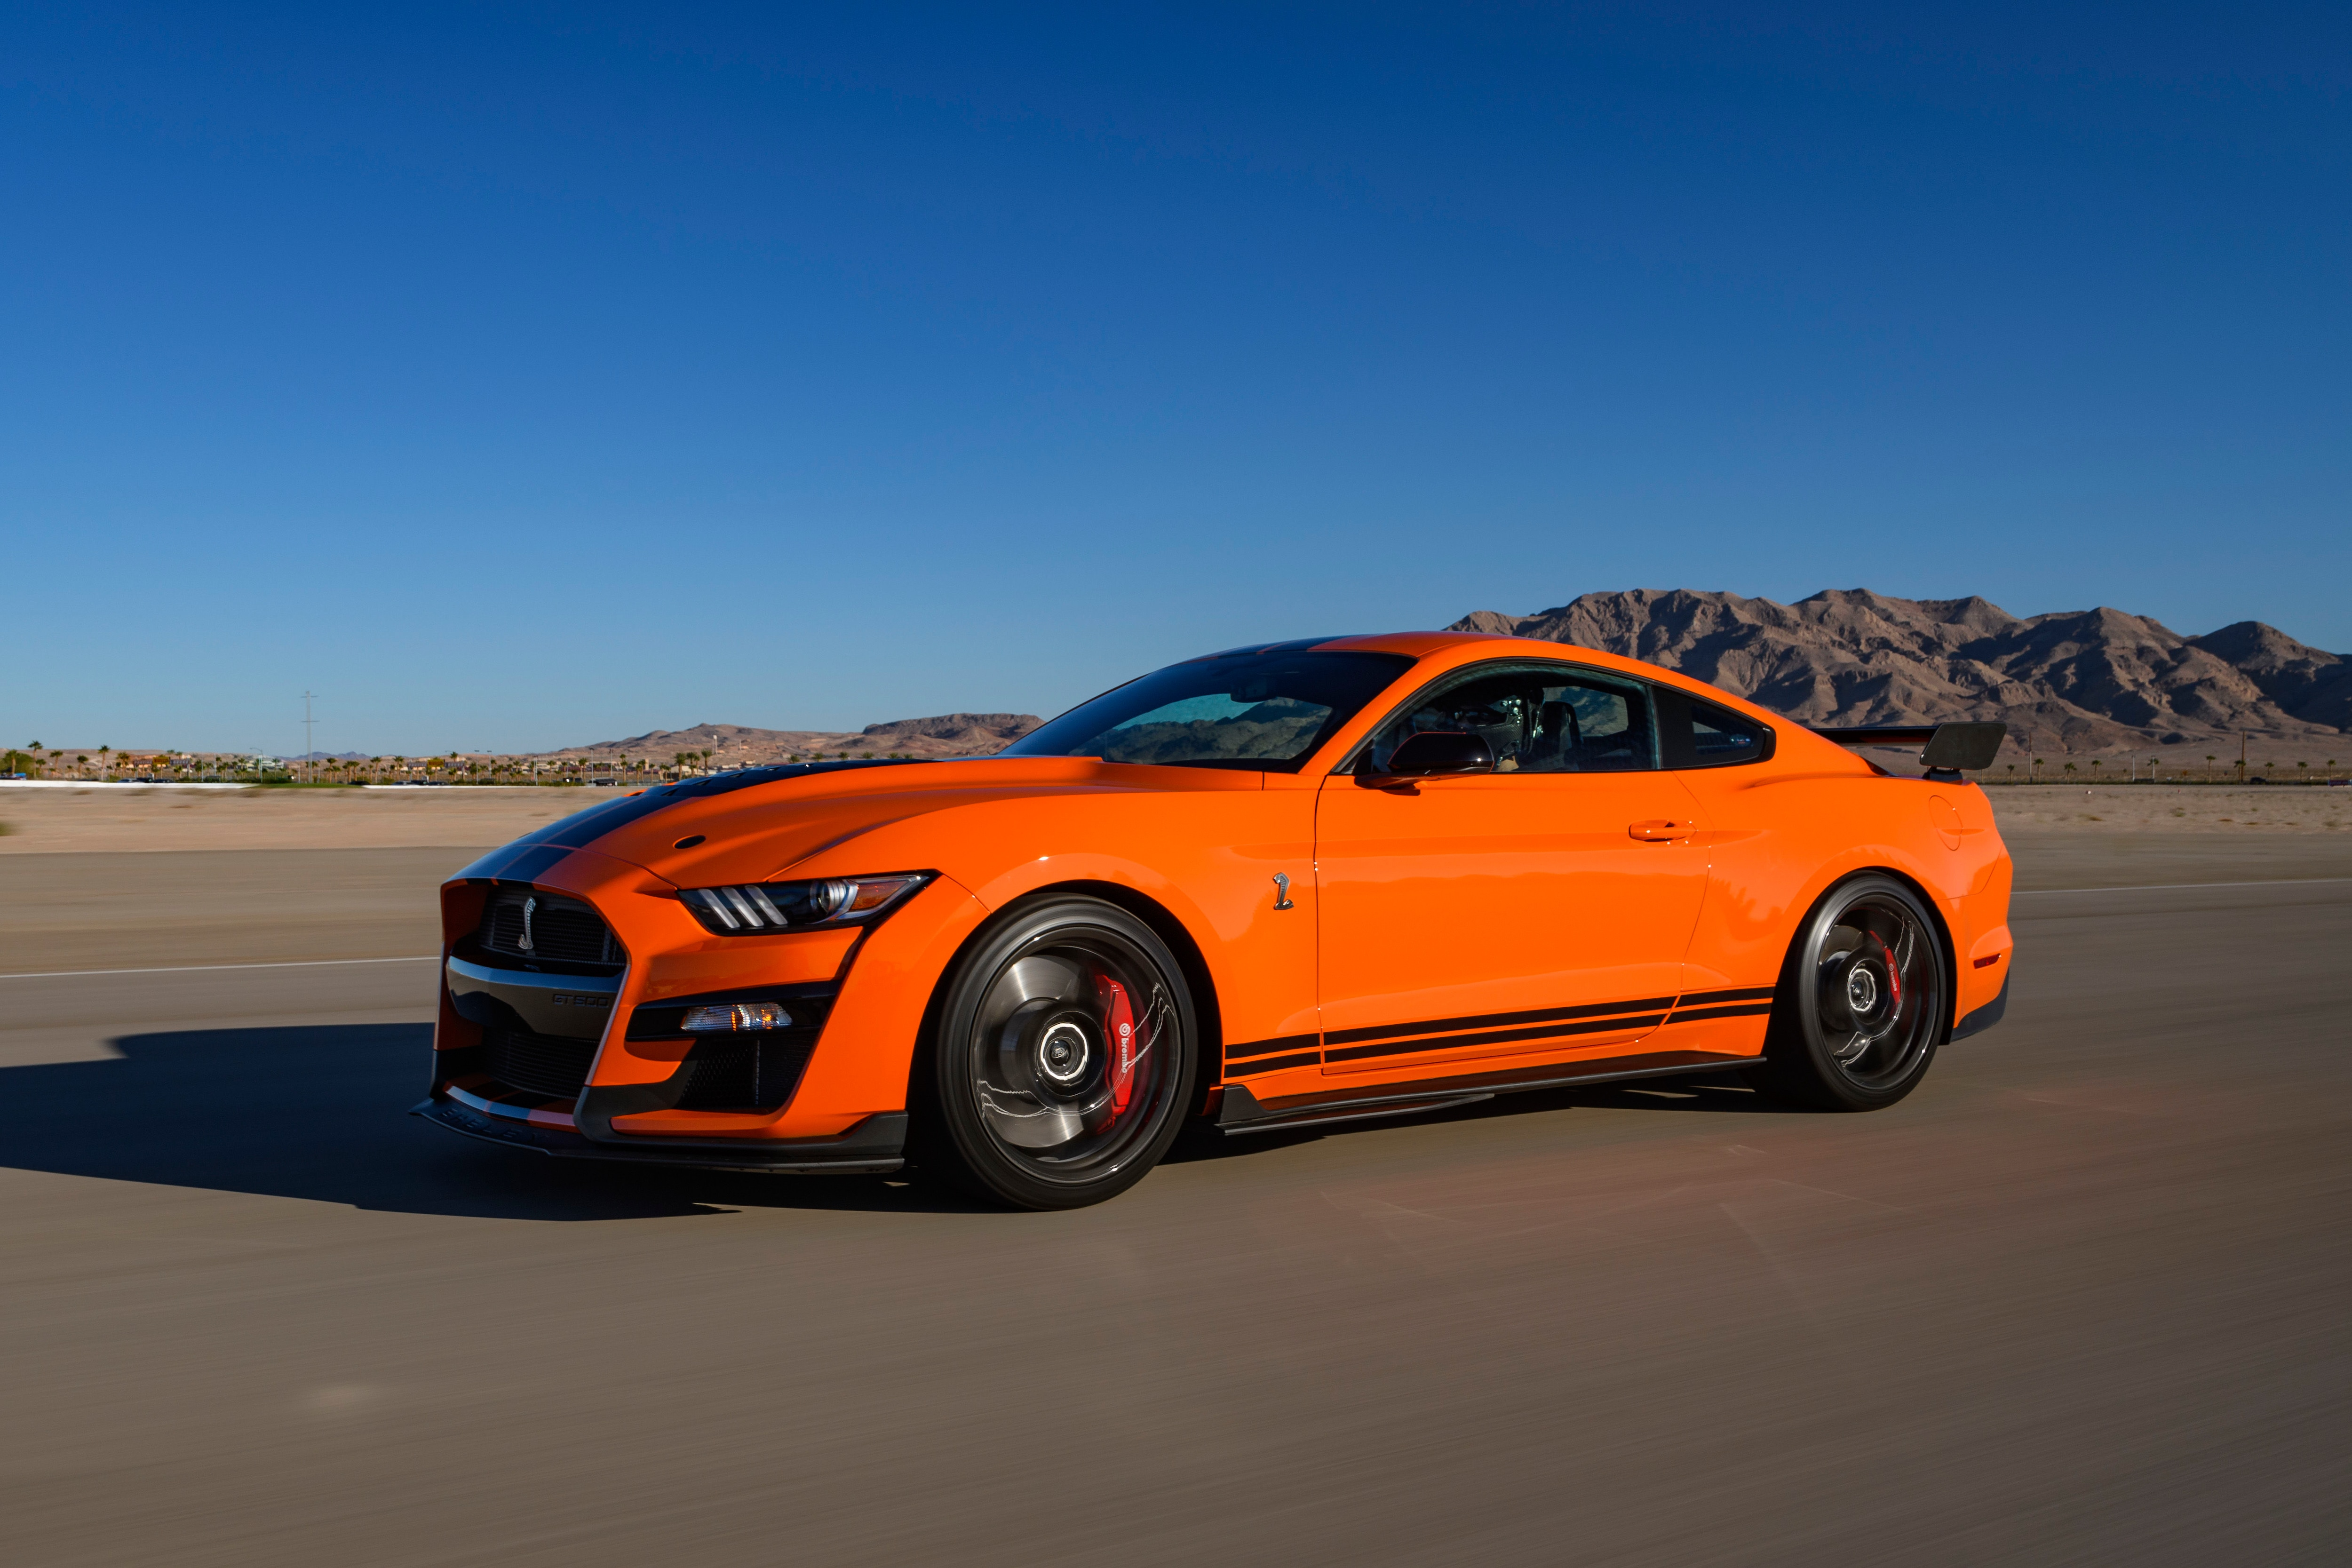 Besides world's best-selling sports car title, the iconic Mustang also won another global sales crown, earning the world's best-selling sports coupe title as well. (2019 Ford Mustang)